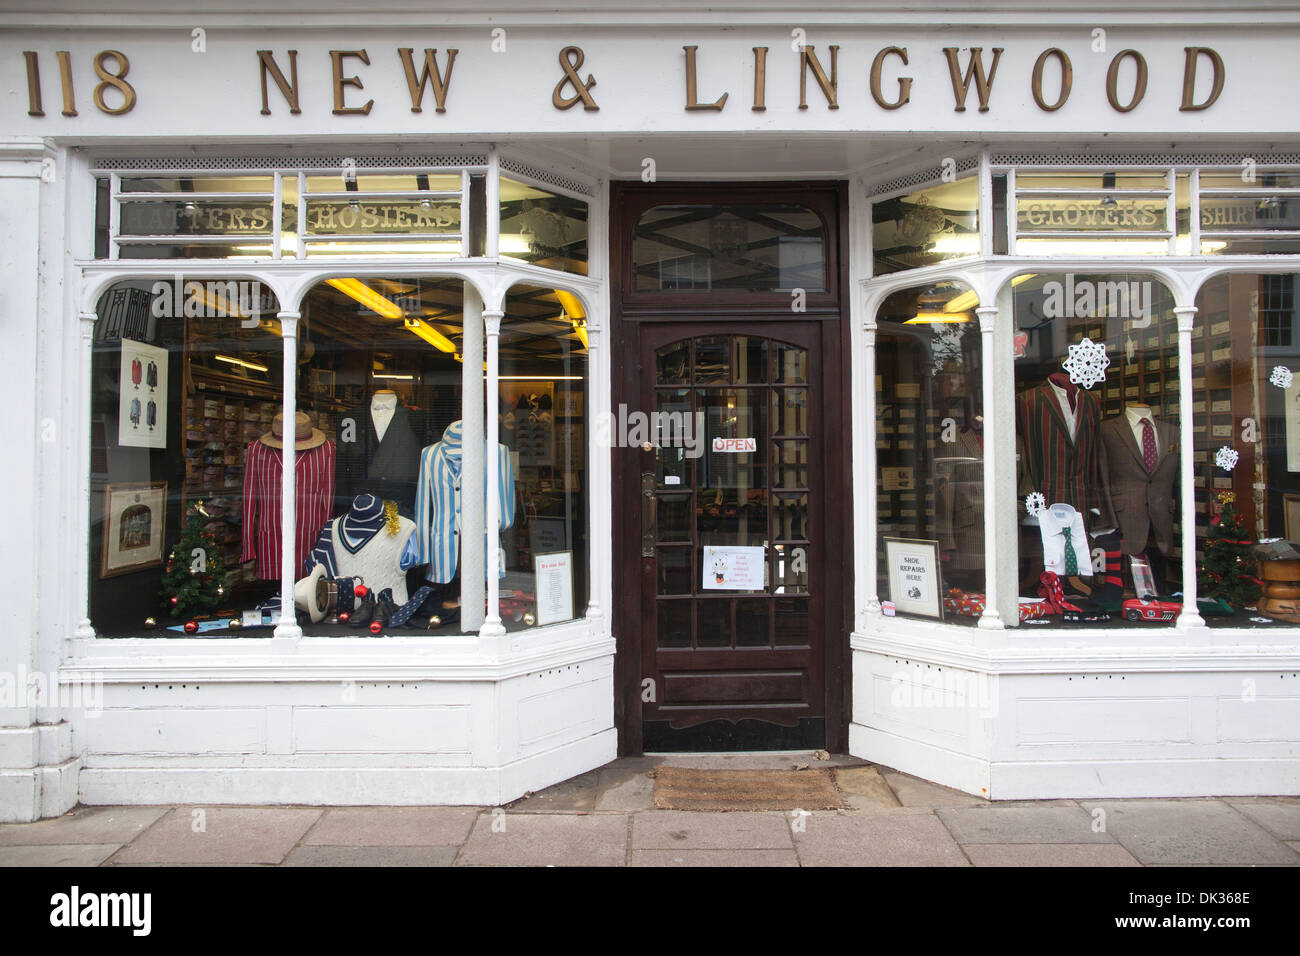 New & Lingwood Suppliers Of Traditional Clothing To Scholars At